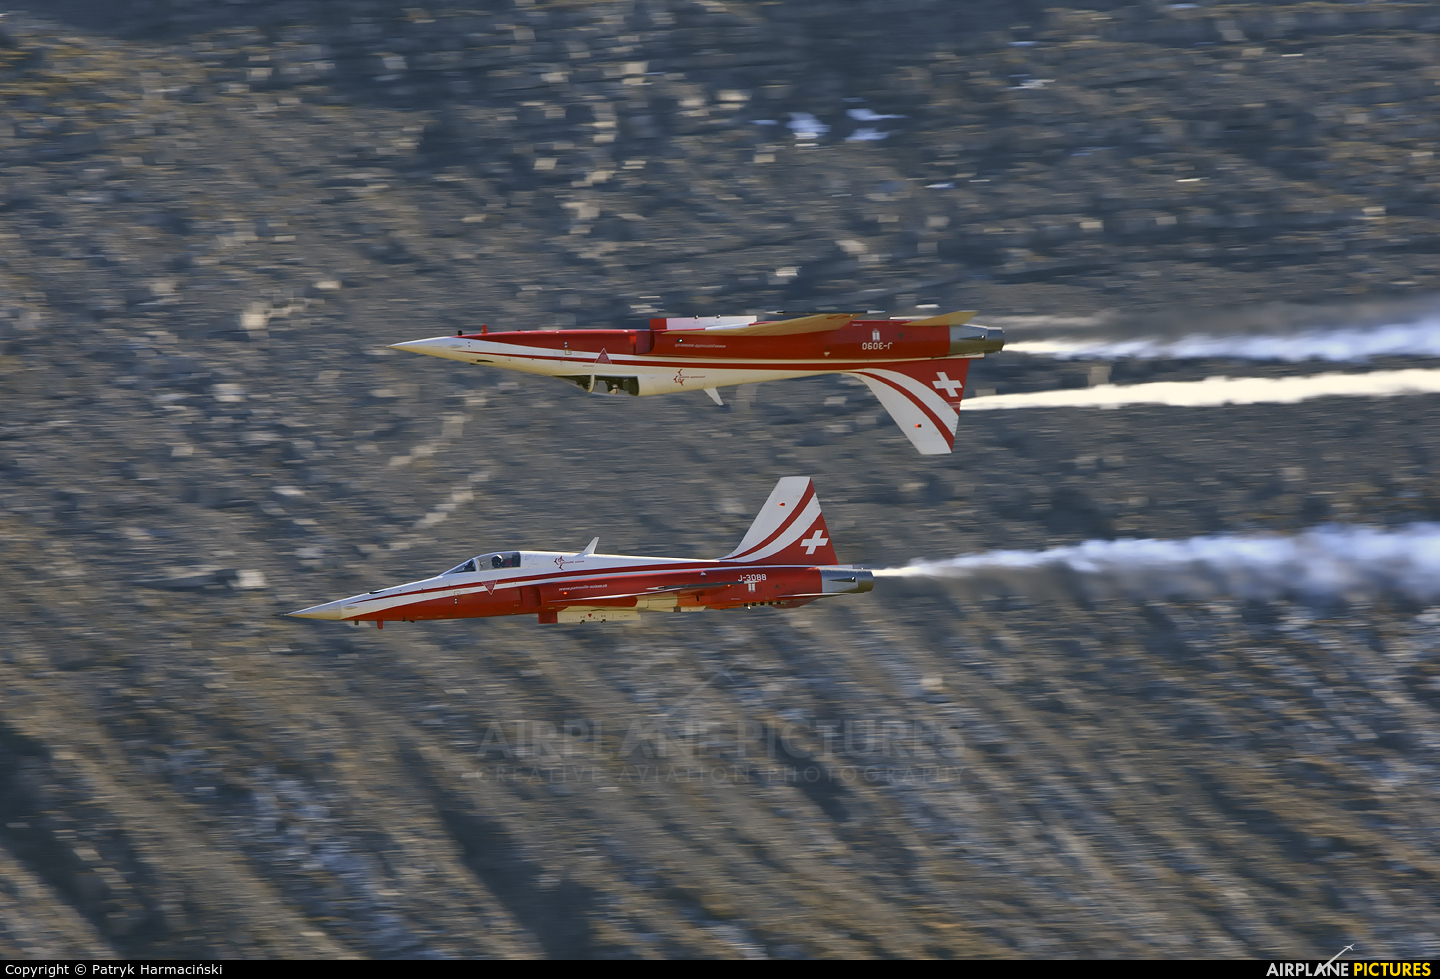 Switzerland - Air Force:  Patrouille de Suisse J-3088 aircraft at Axalp - Ebenfluh Range